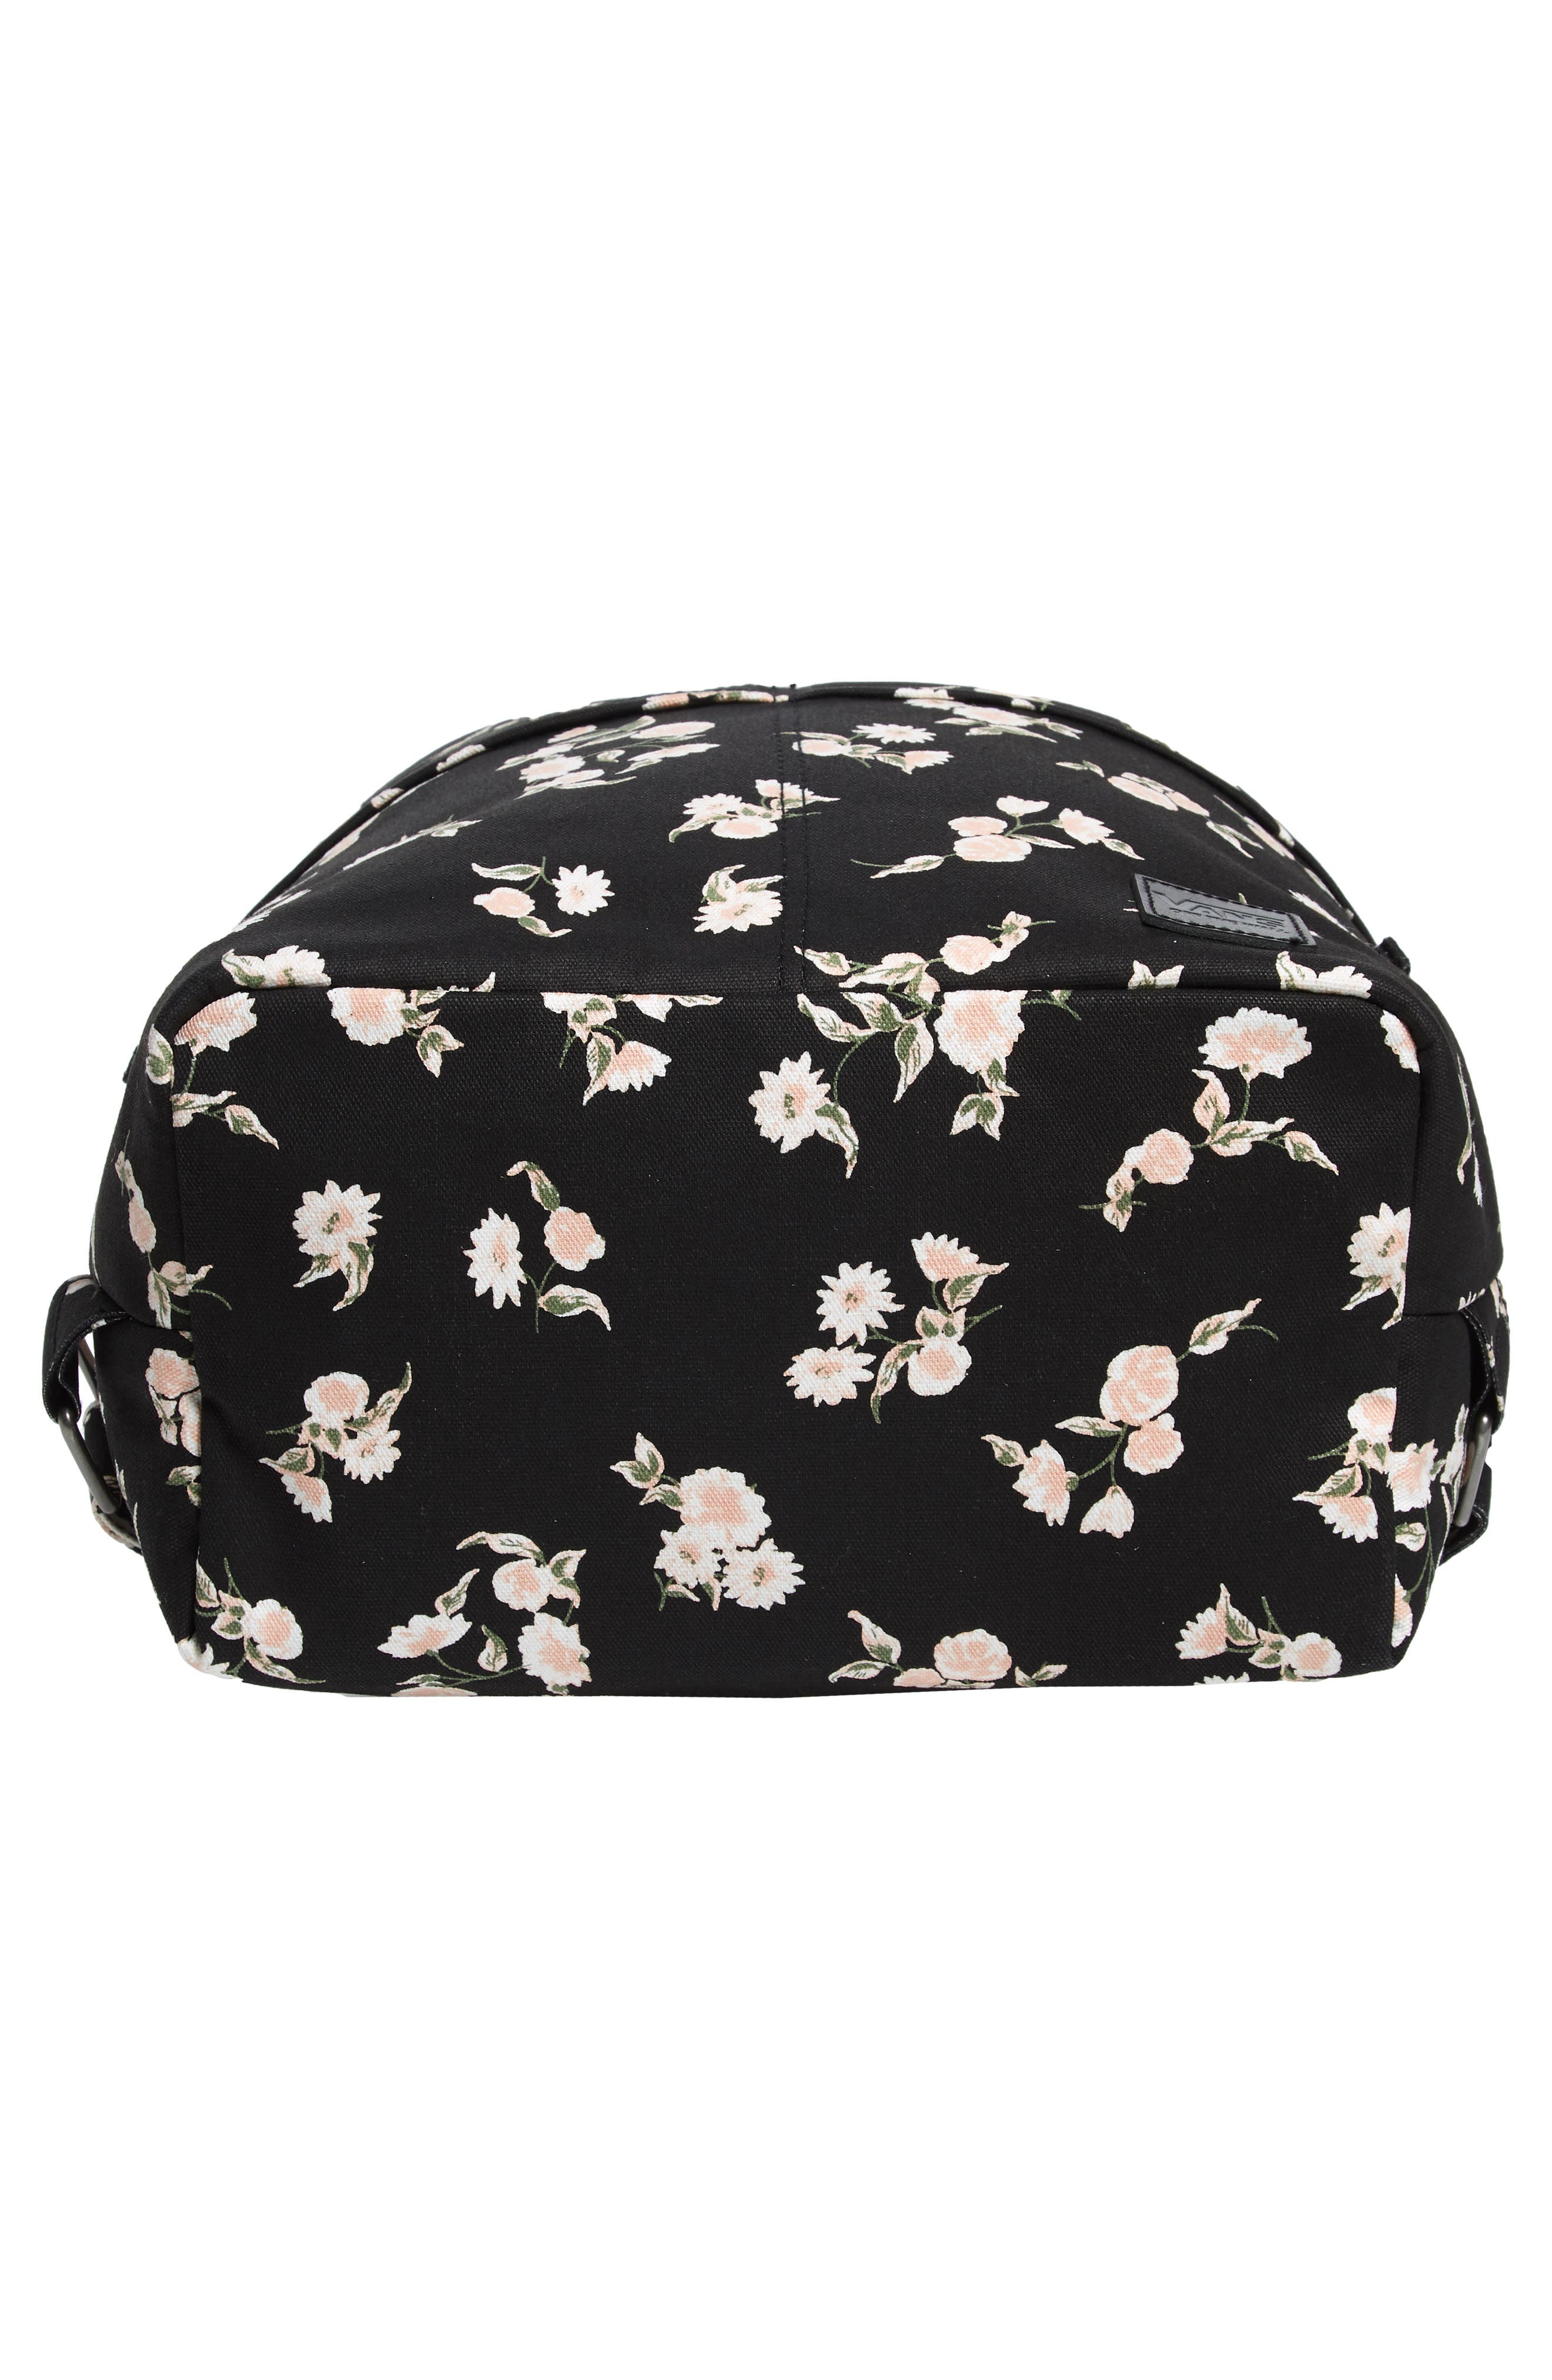 Lakeside Floral Print Backpack,                             Alternate thumbnail 6, color,                             001